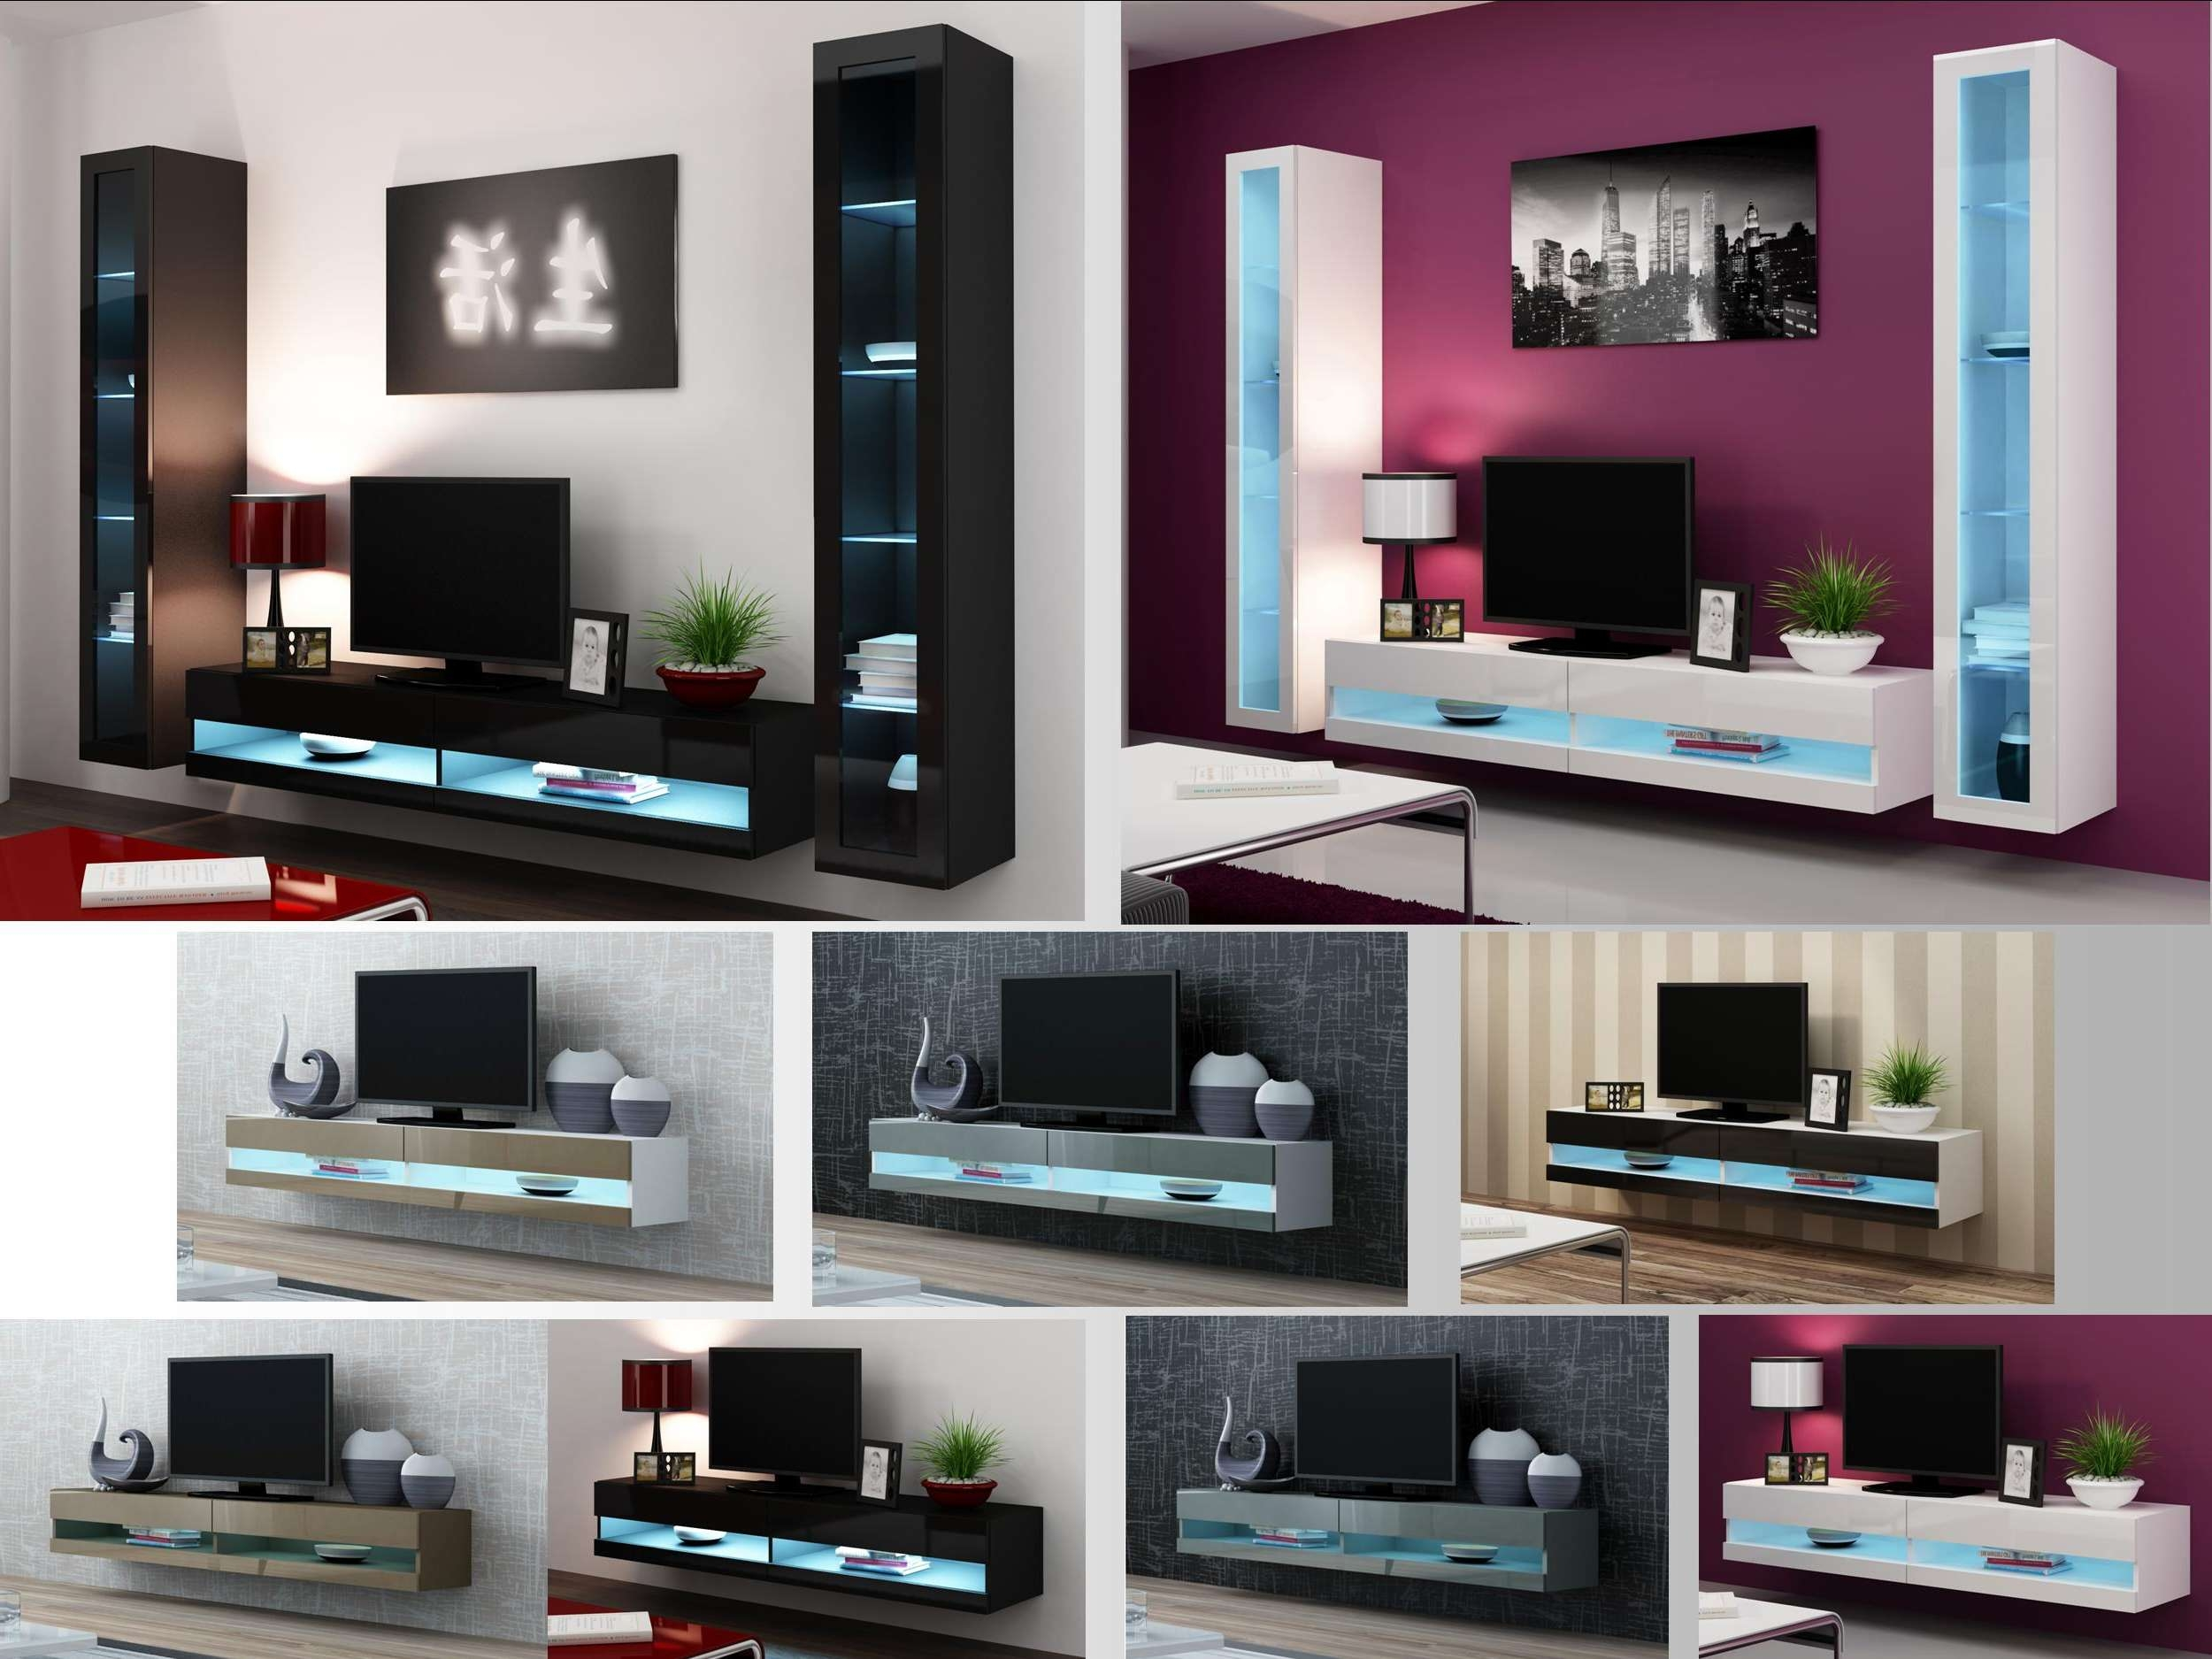 living room furniture wall units. High Gloss Living Room Furniture \u2013 Tv Stand, Wall Mounted Cabinet Within Cabinets And Units U